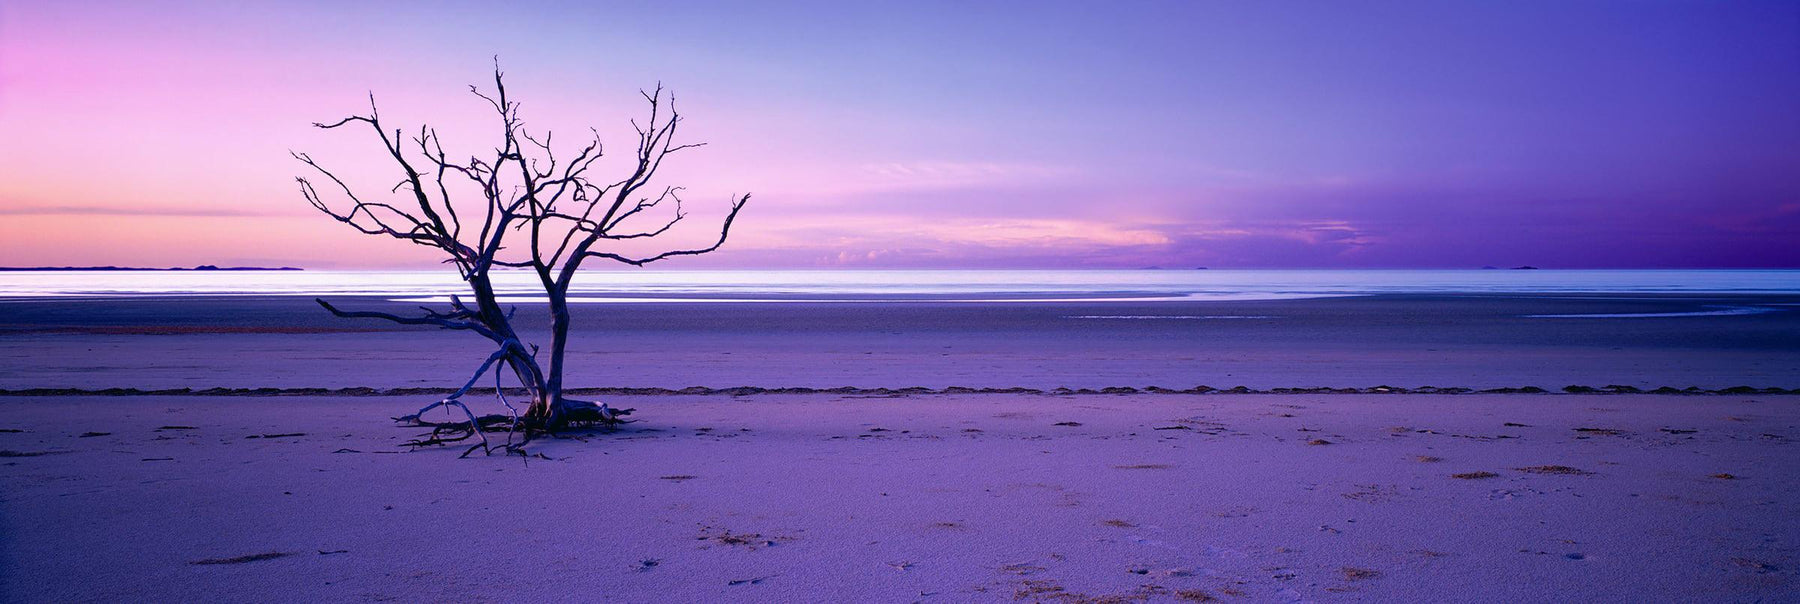 Lone tree on the long flat beach at Cape York Australia during the sunset